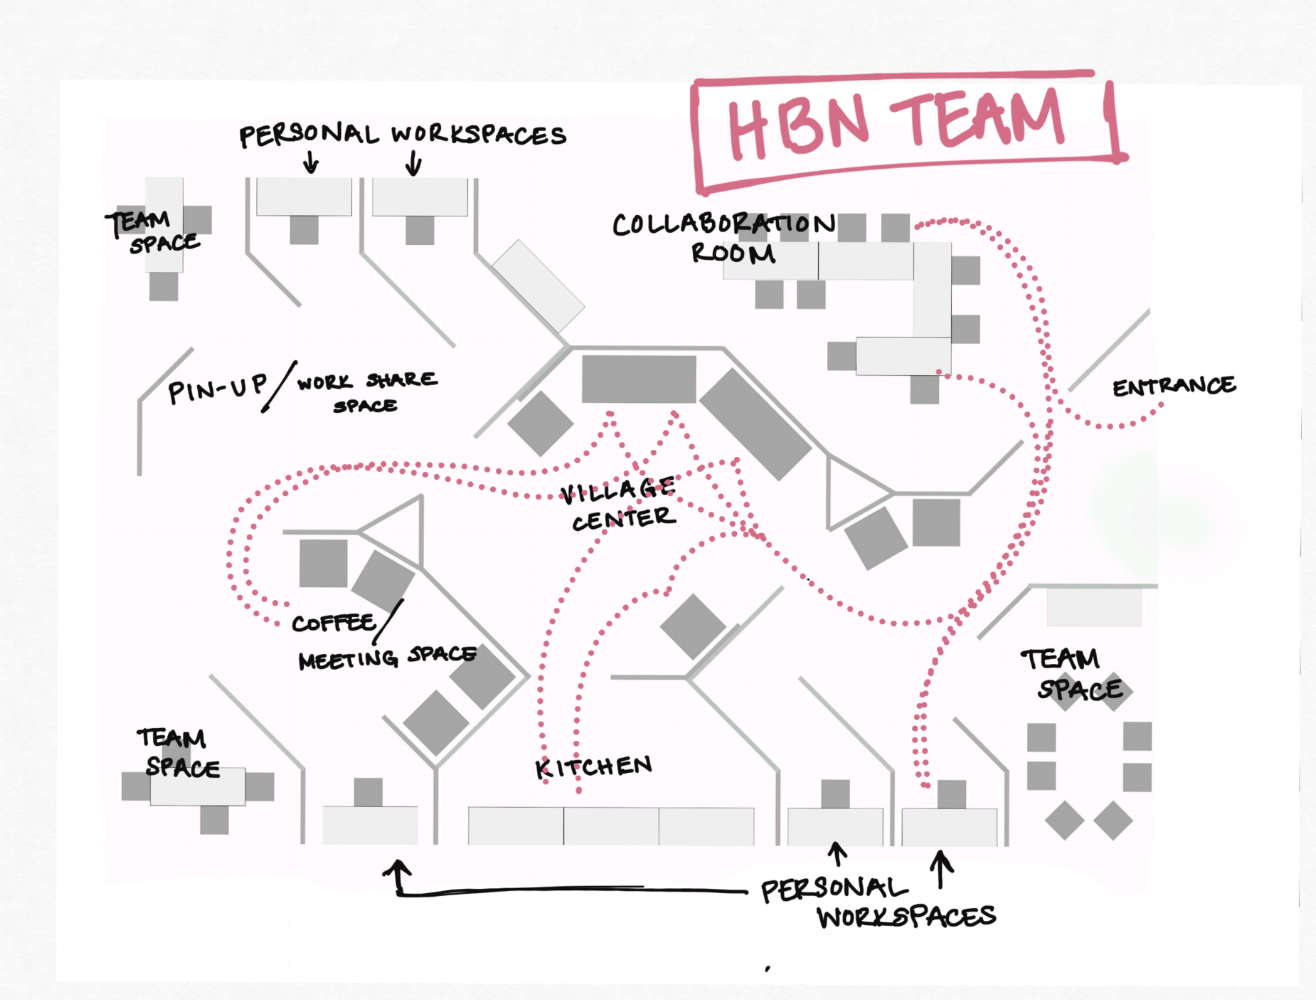 The HBN team is comprised of 5 to 8 volunteers on any given day. They are working to develop a new outreach plan and need a large space to work in together. Each individual may take coffee breaks or make phone calls occasionally, but their home base will always be the collaboration room.